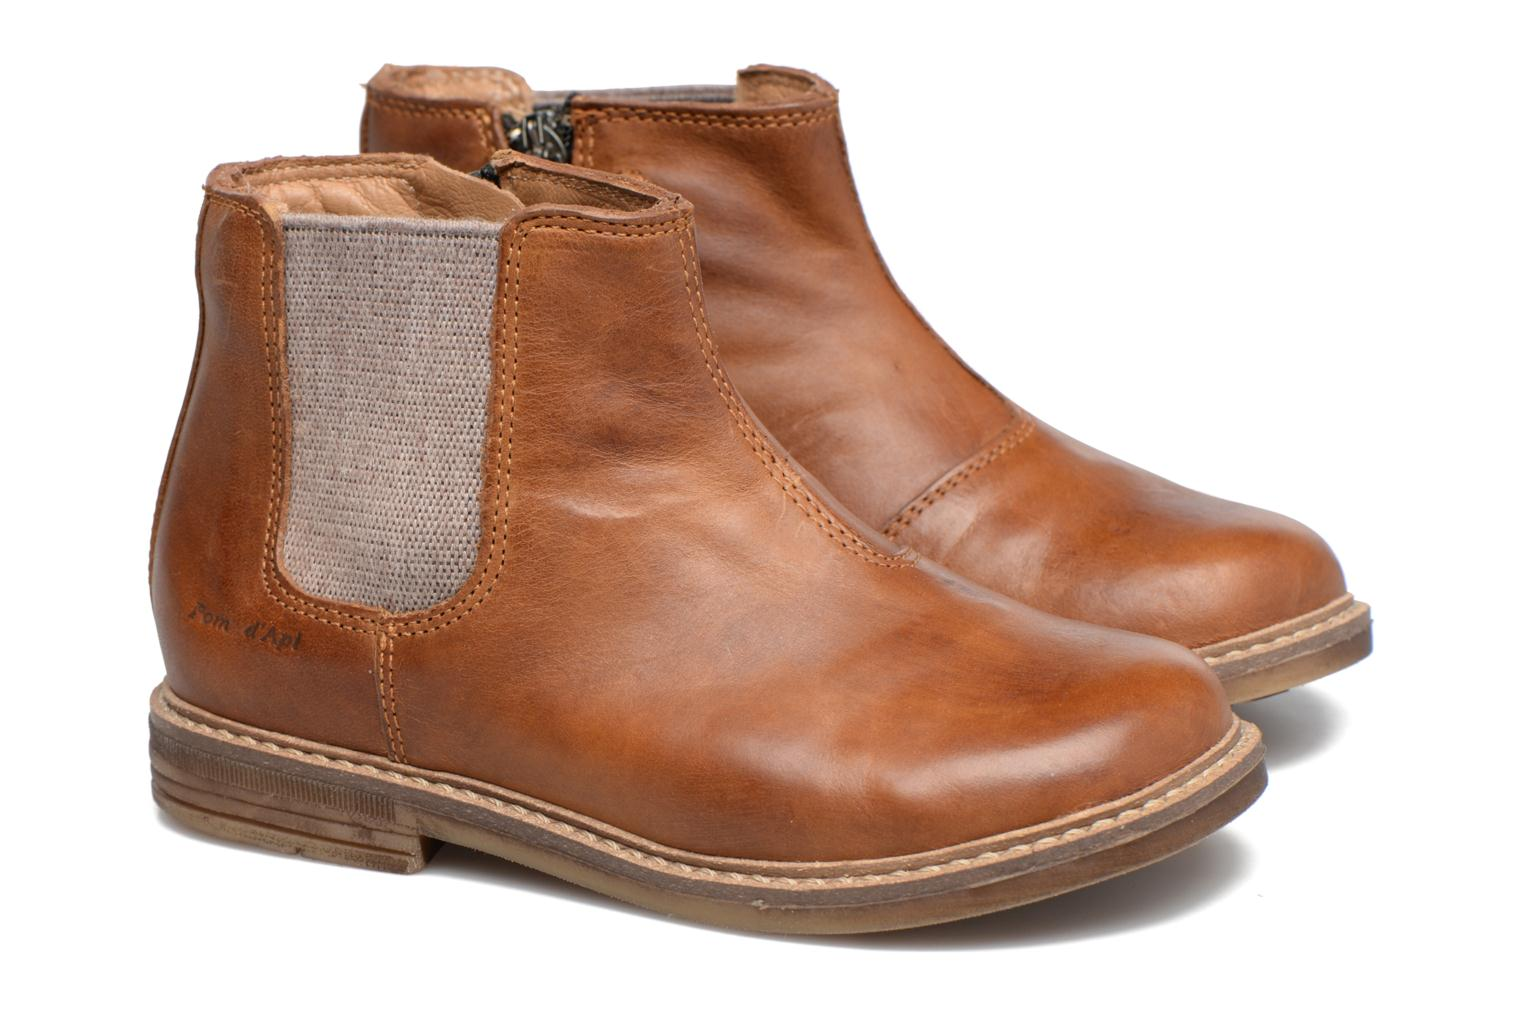 Bottines et boots Pom d Api Retro Jodzip Marron vue 3/4